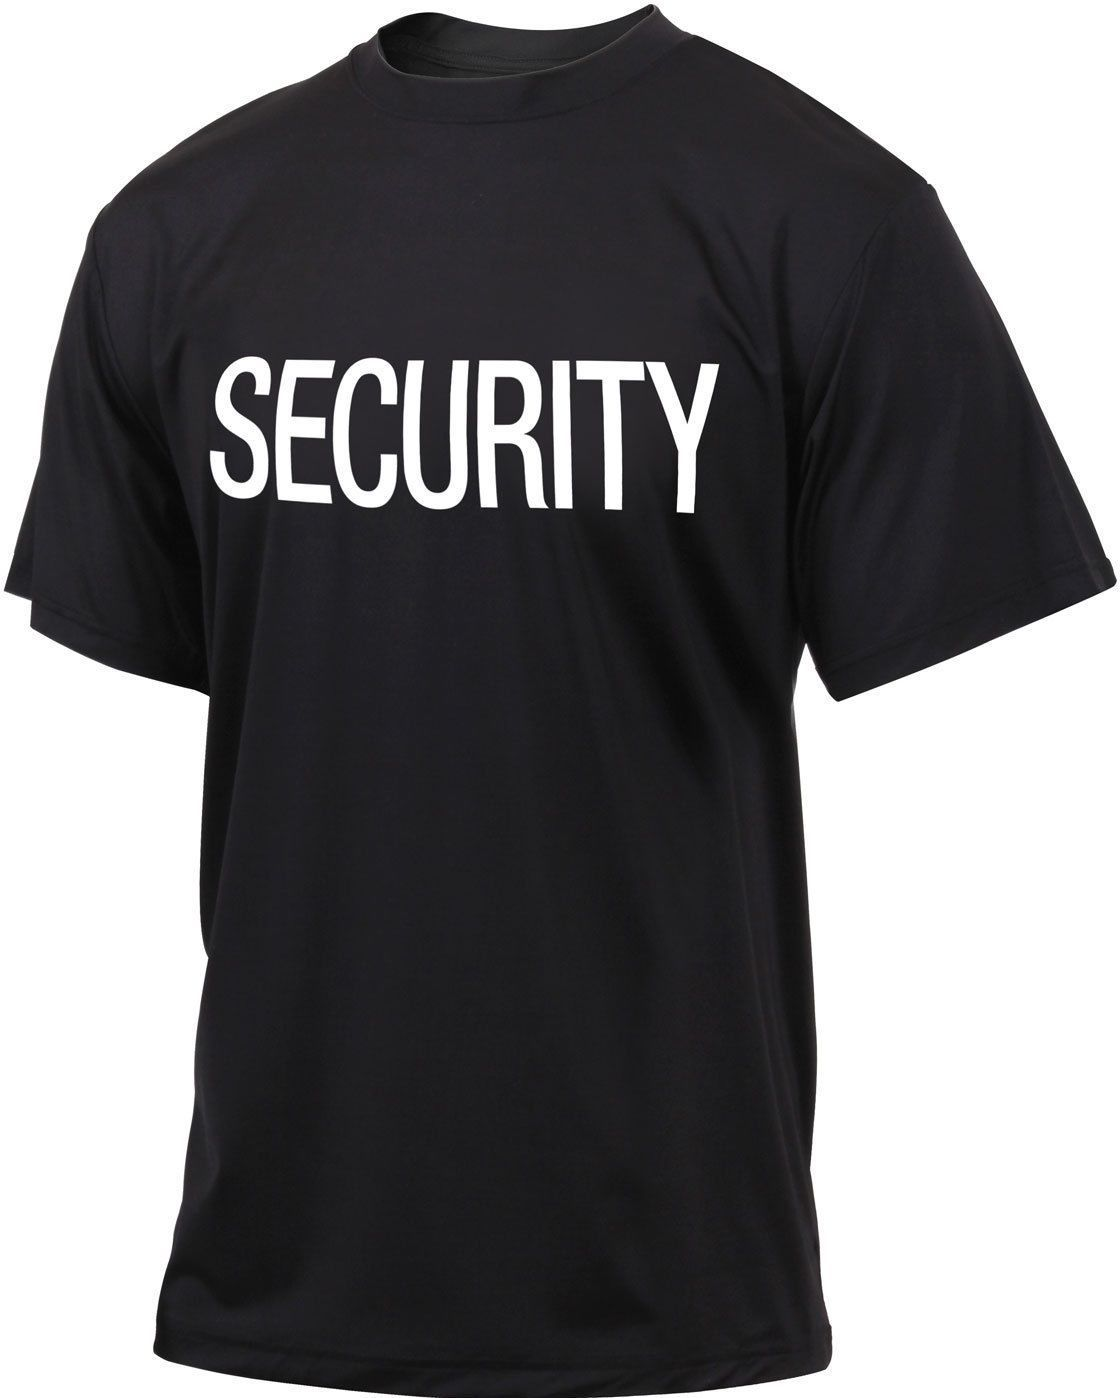 Black Quick Dry Performance Double Sided Security T-Shirt  aa633439b09